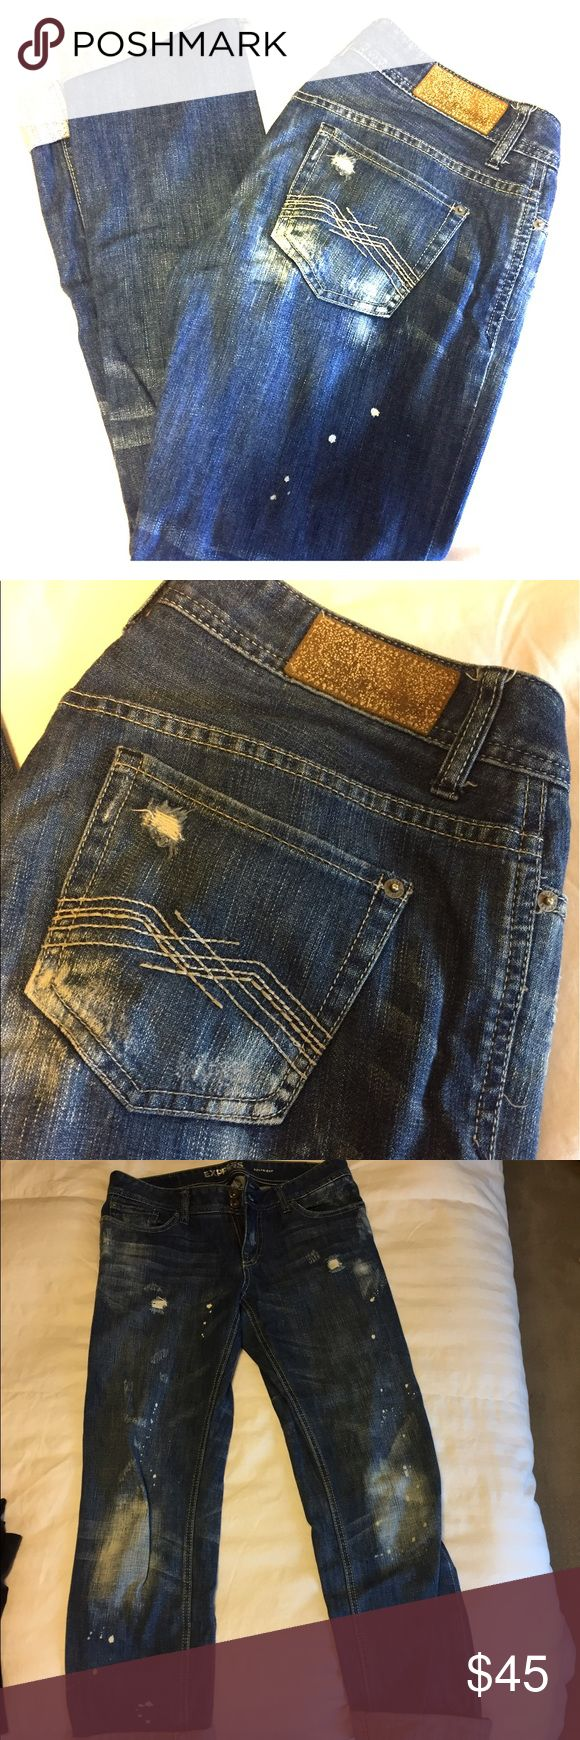 Express distressed women's boyfriend jeans Boyfriend jeans with distressed wash from Express. Can be rolled up or let down. Only worn a few times; in excellent condition! Size 4, very comfortable & relaxed fit. Express Jeans Boyfriend